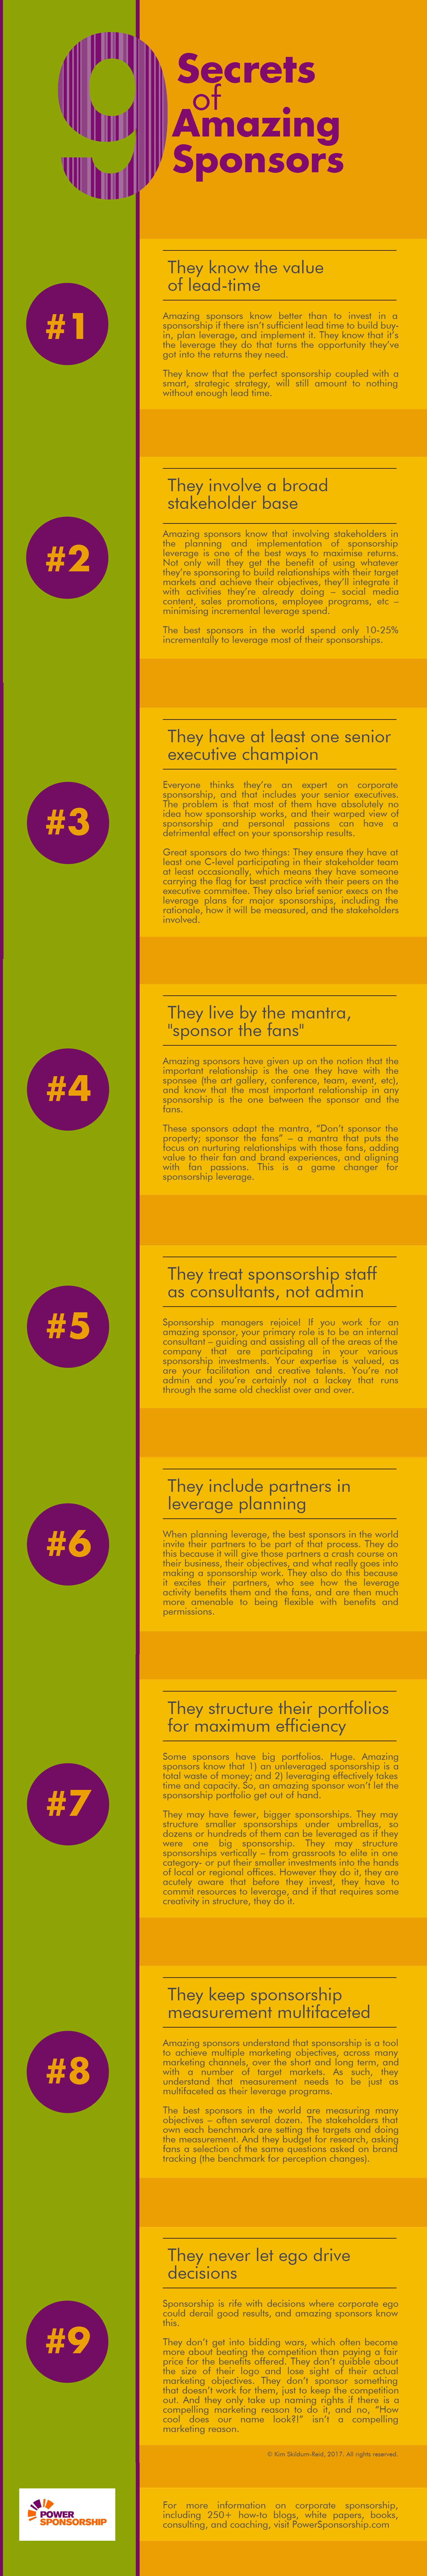 9 Secrets of Amazing Sponsors - big